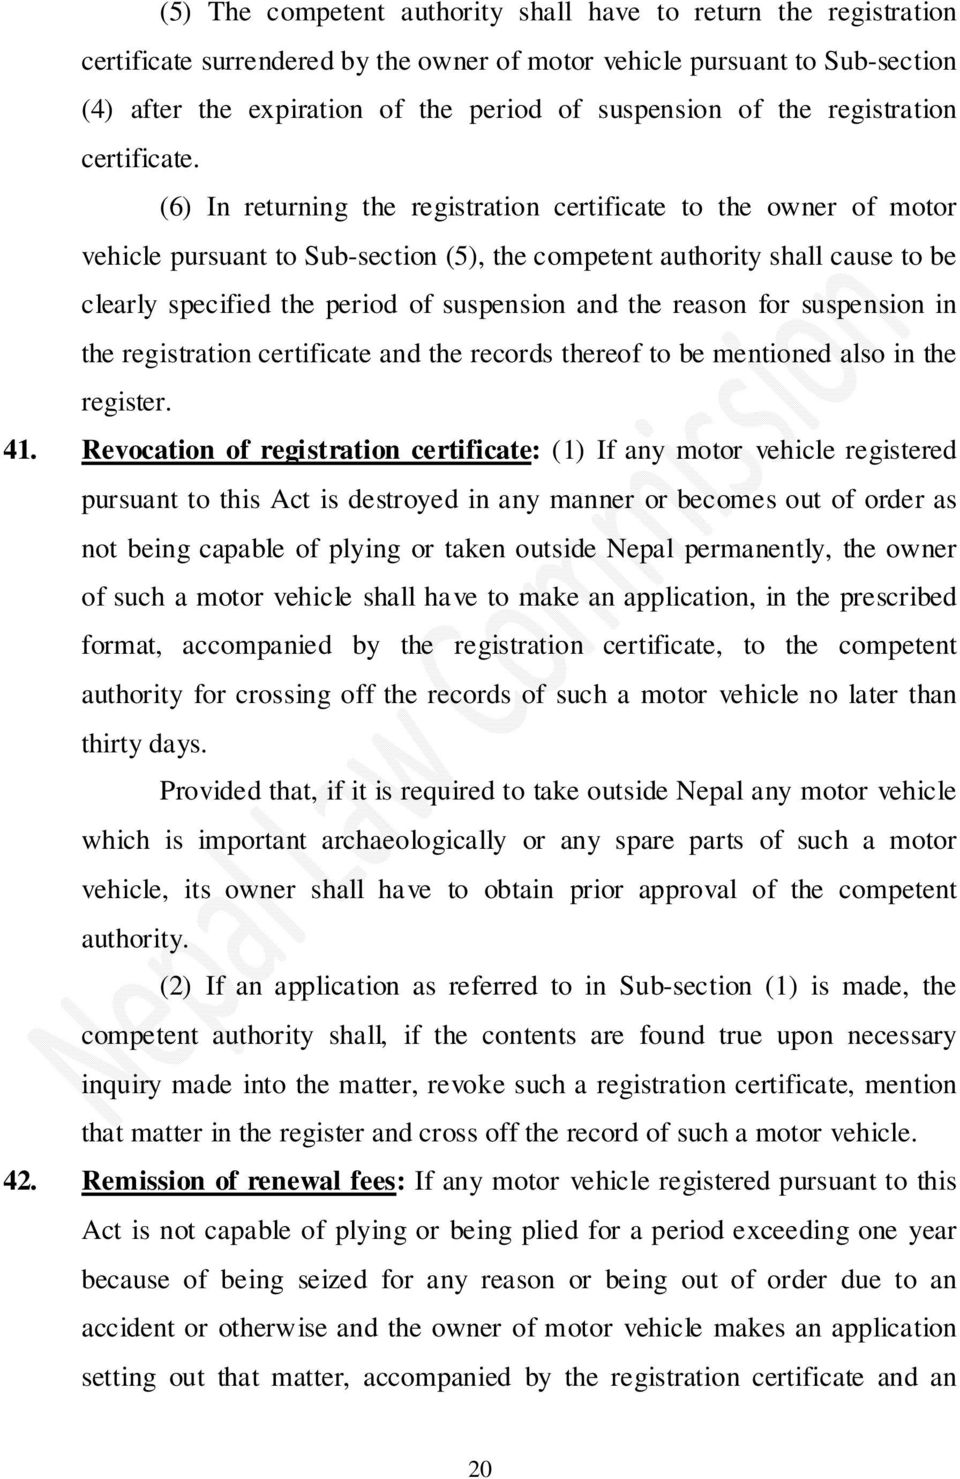 (6) In returning the registration certificate to the owner of motor vehicle pursuant to Sub-section (5), the competent authority shall cause to be clearly specified the period of suspension and the